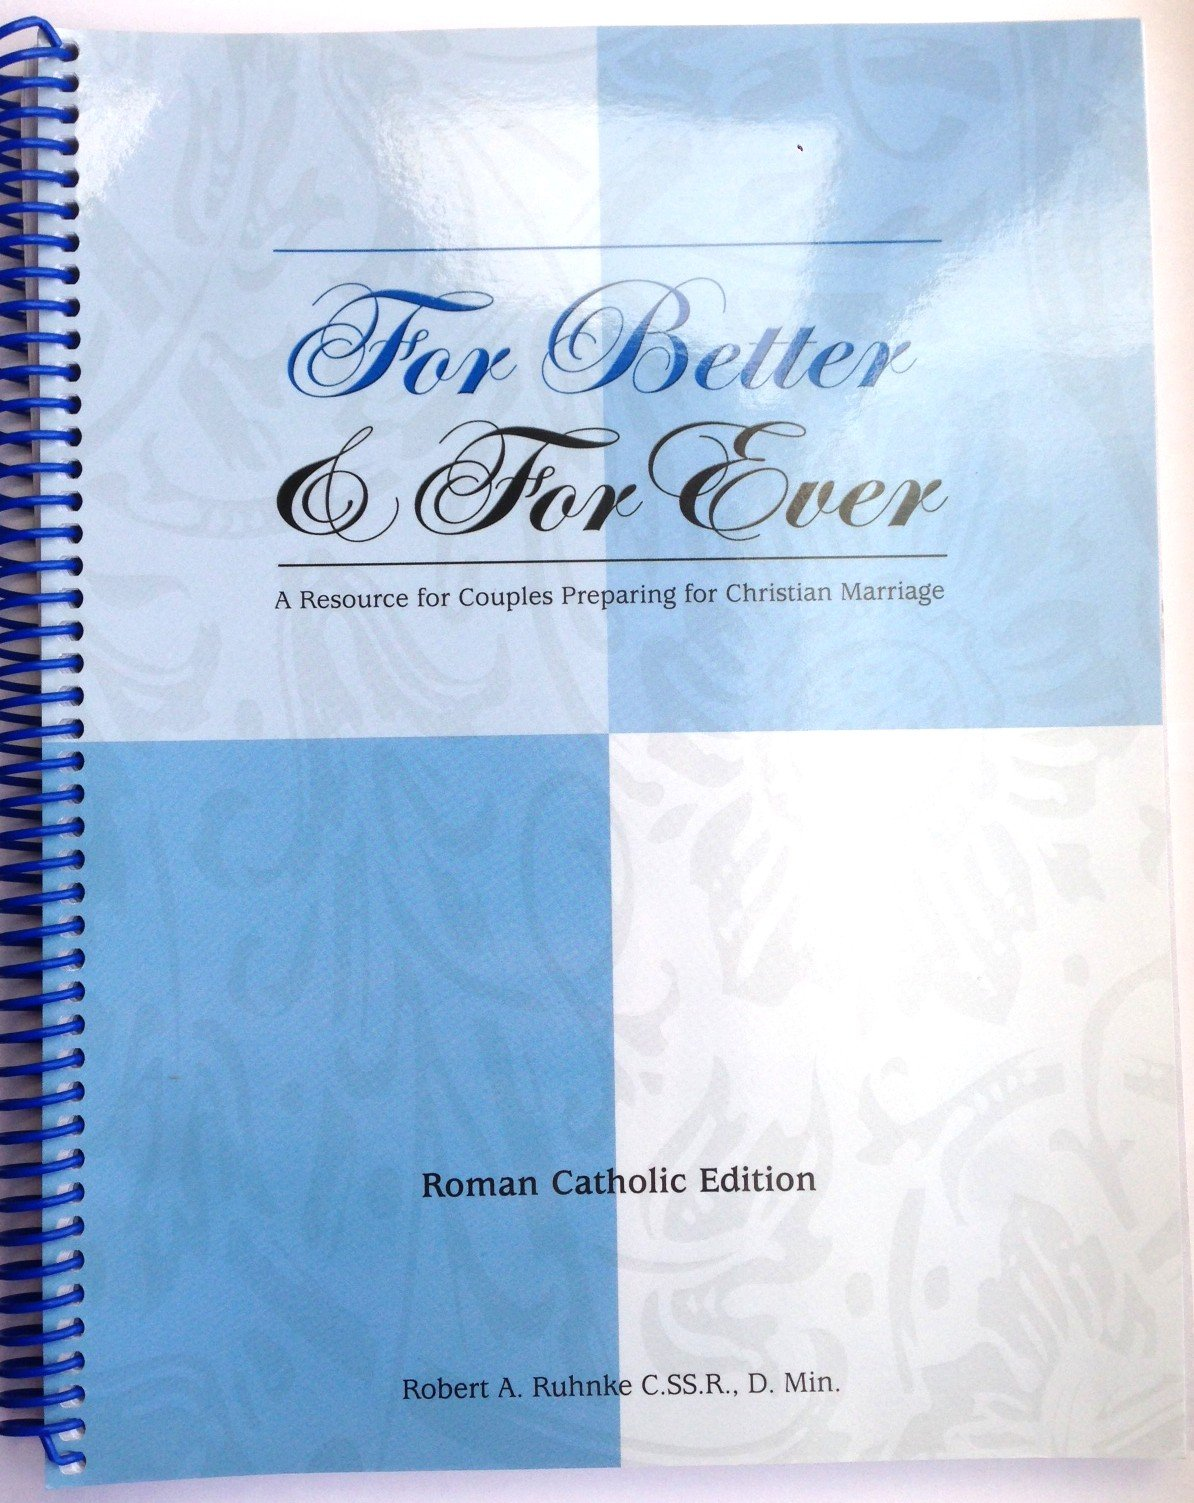 For Better & For Ever: A Resource for Couples Preparing for Christian  Marriage (Roman Catholic Edition) (Roman Catholic Edition): and D. Min.